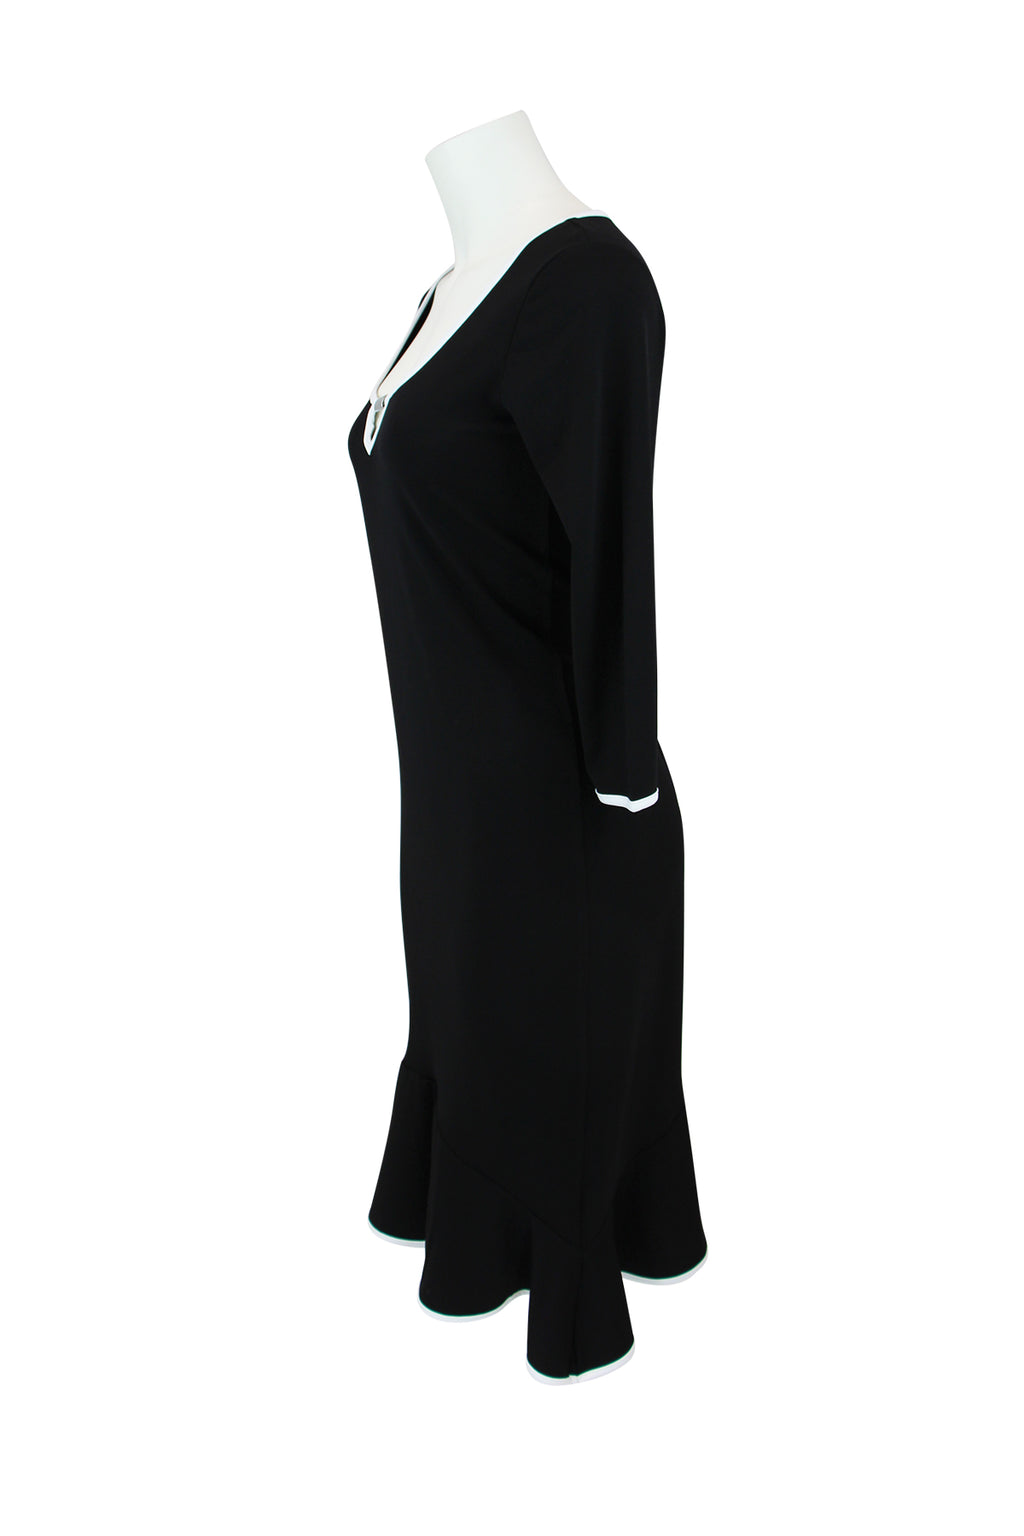 Sandra Soulos Black & White Dress